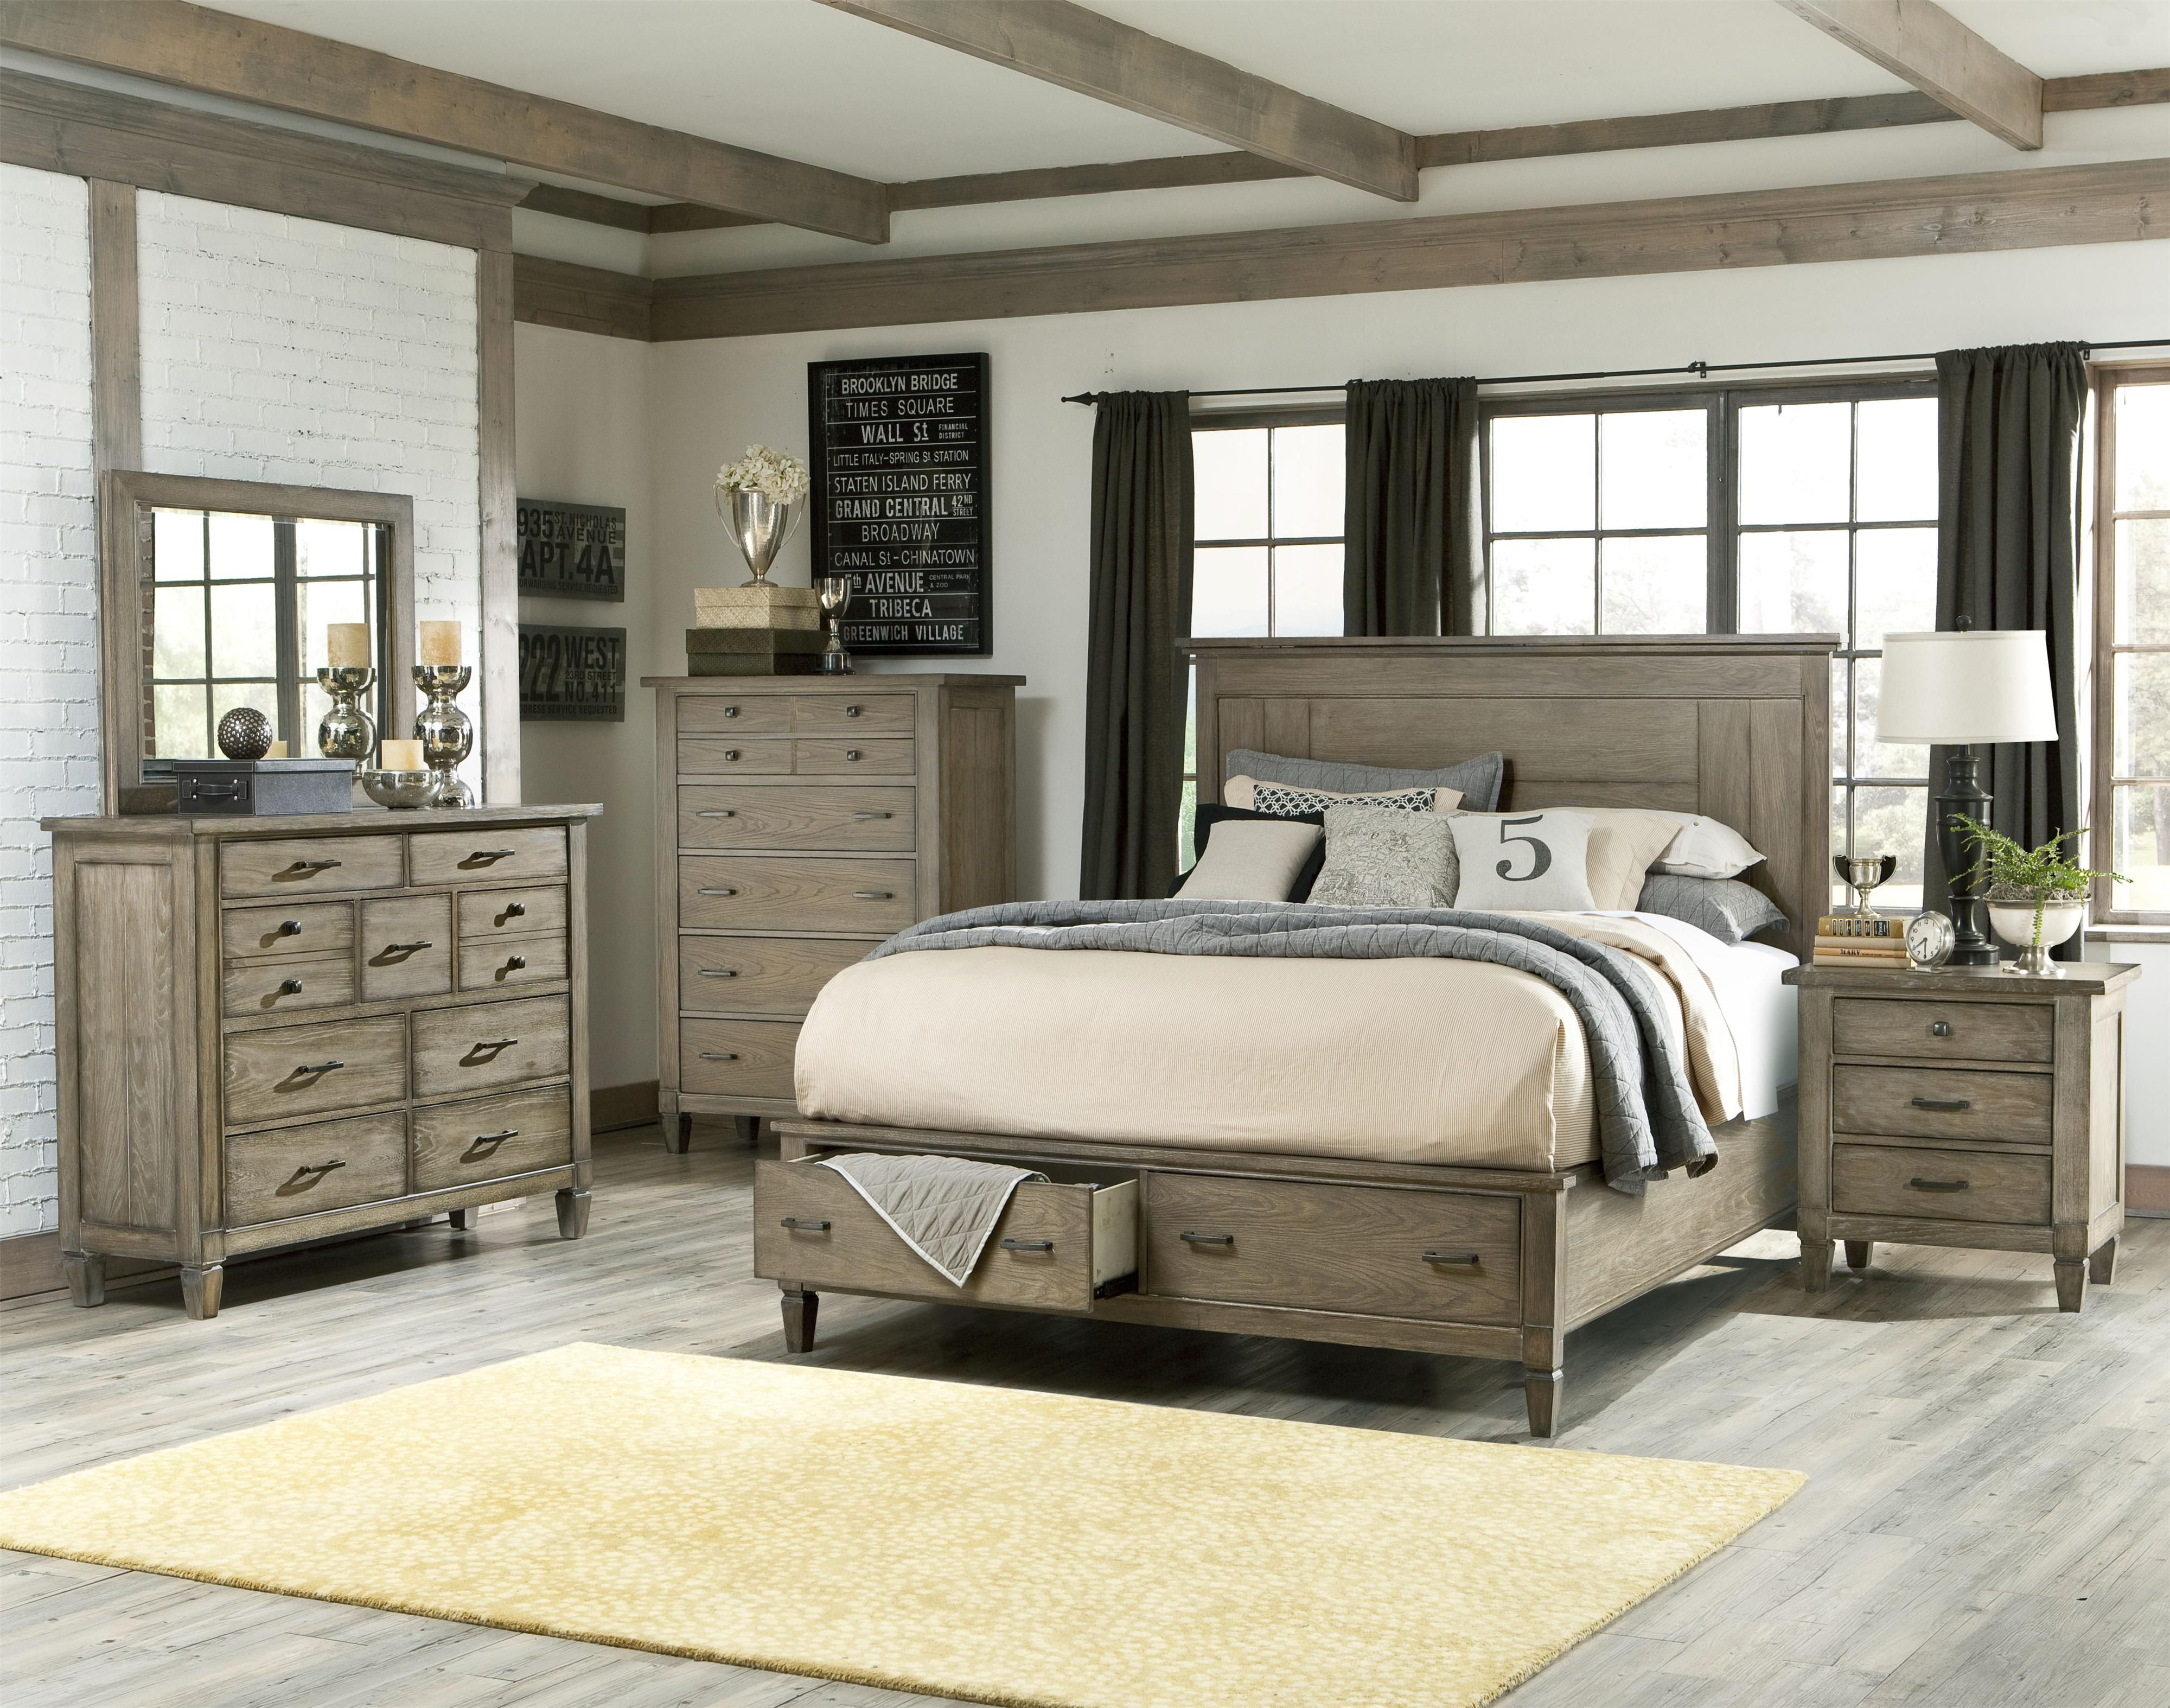 Best ideas about Coastal Bedroom Furniture . Save or Pin Coastal Master Bedroom Ideas Brownstone 3pc Bed Mirror Now.